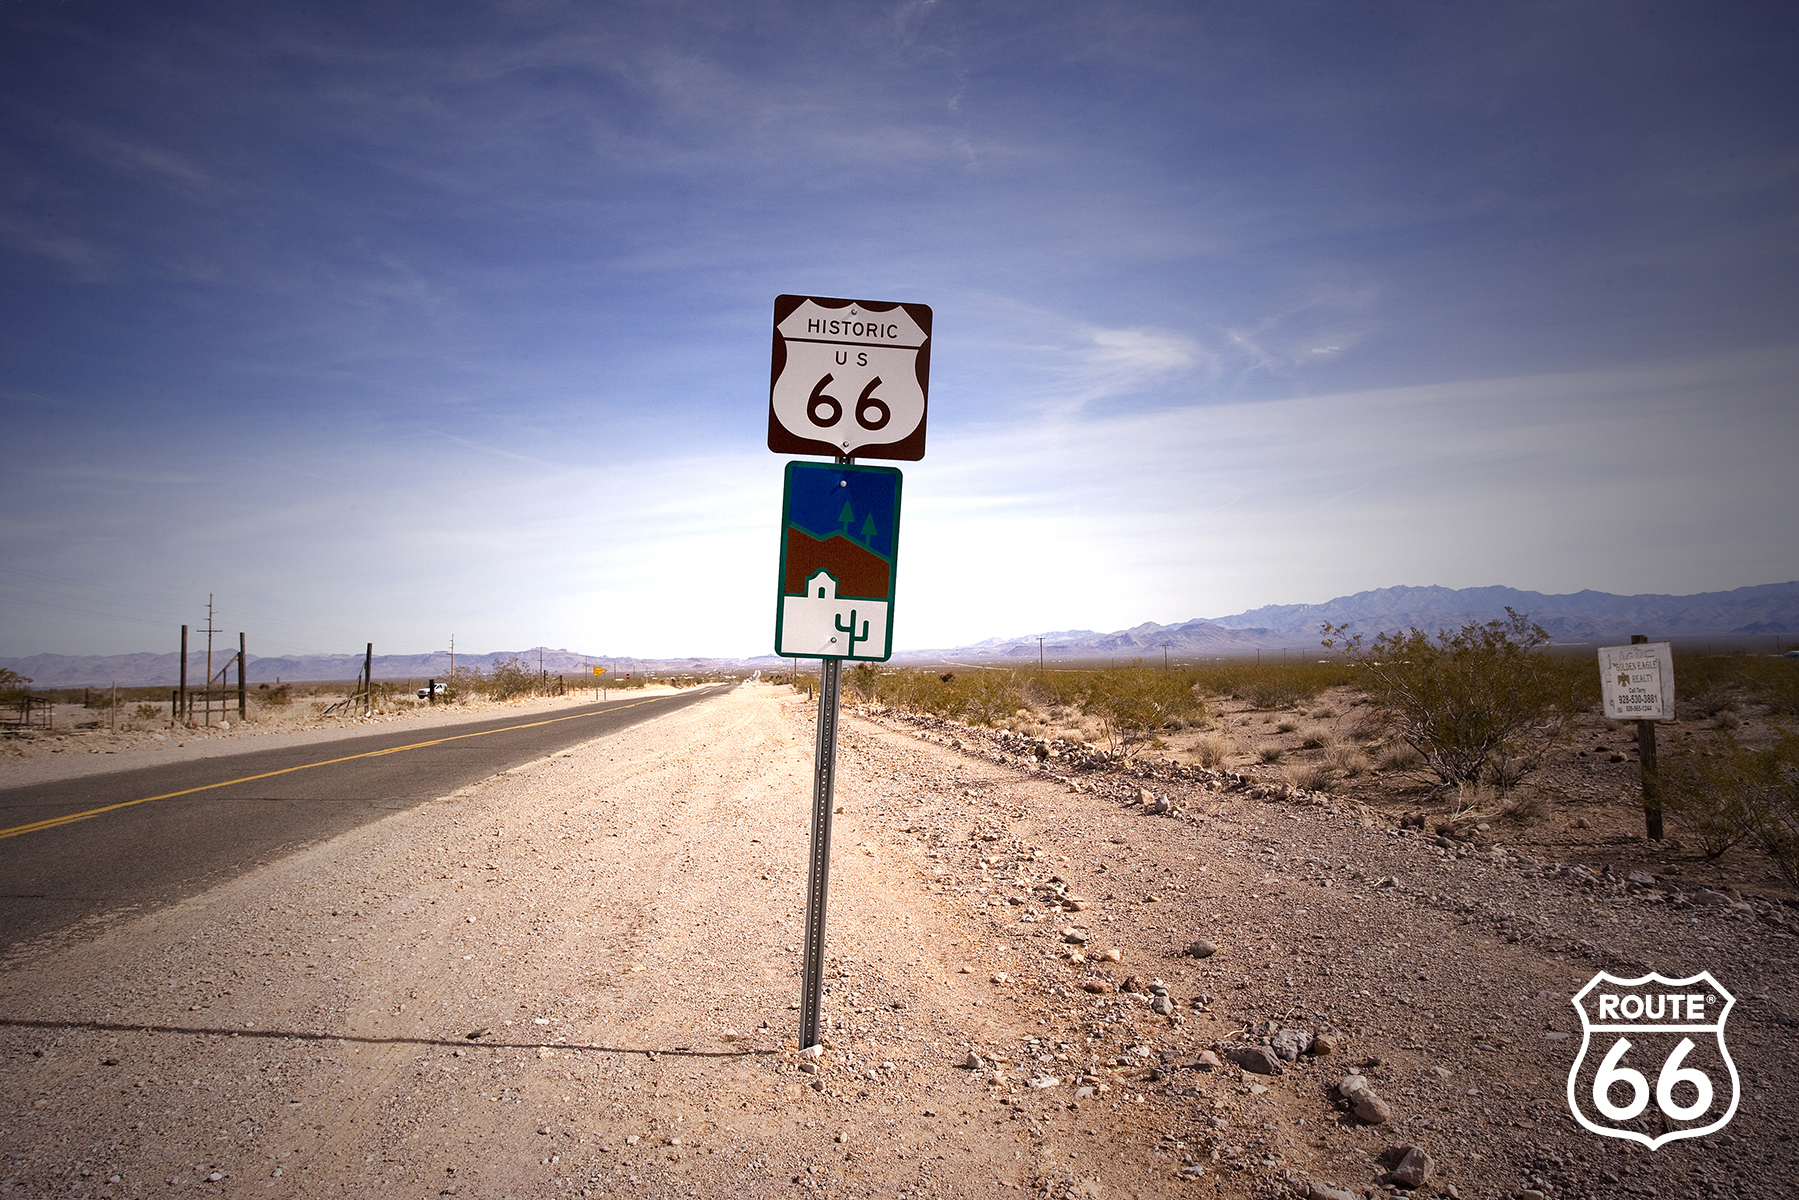 ADVERTISING ROUTE 66